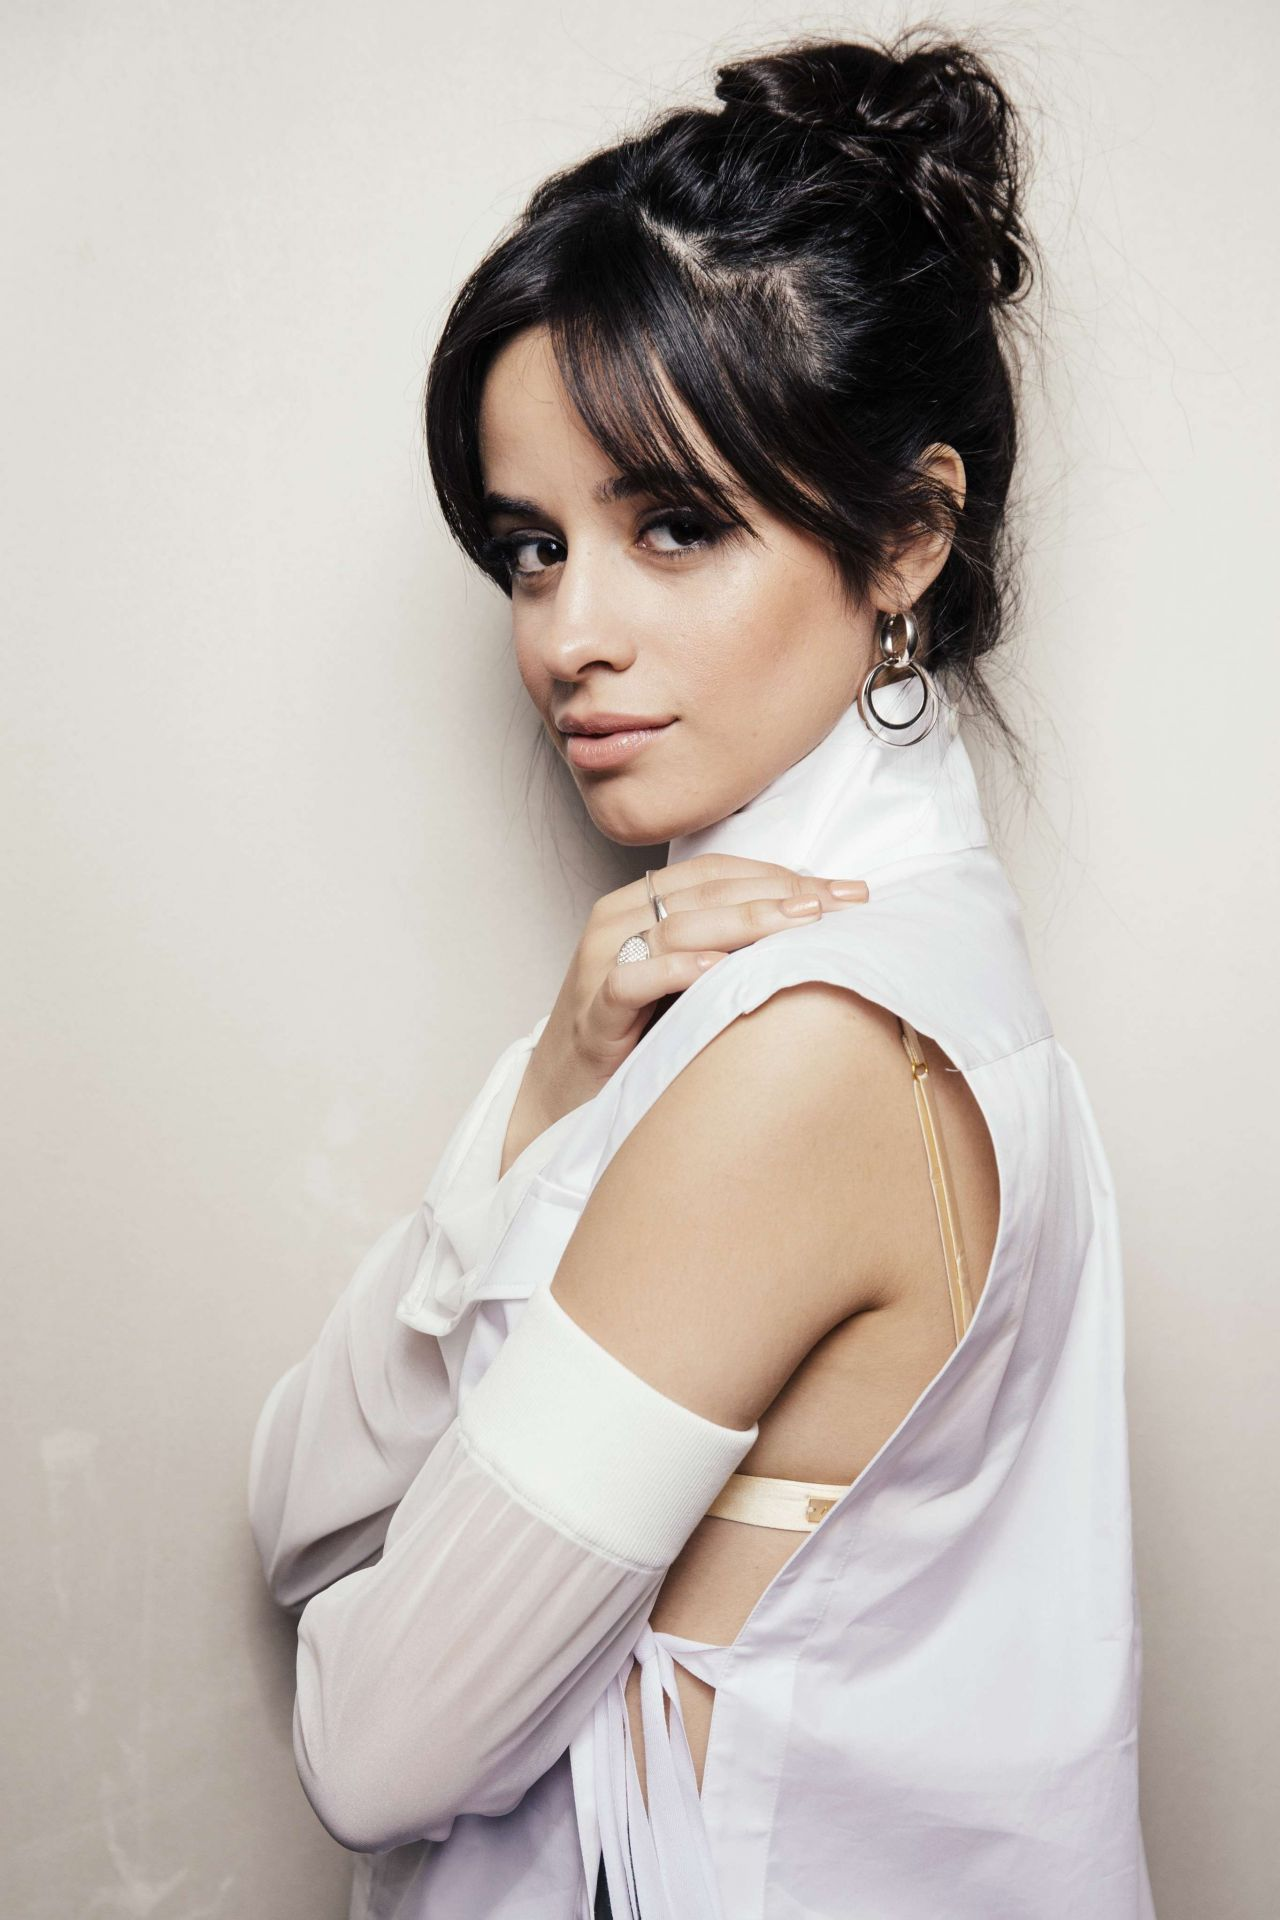 Camila Cabello - Portrait Photoshoot 2018